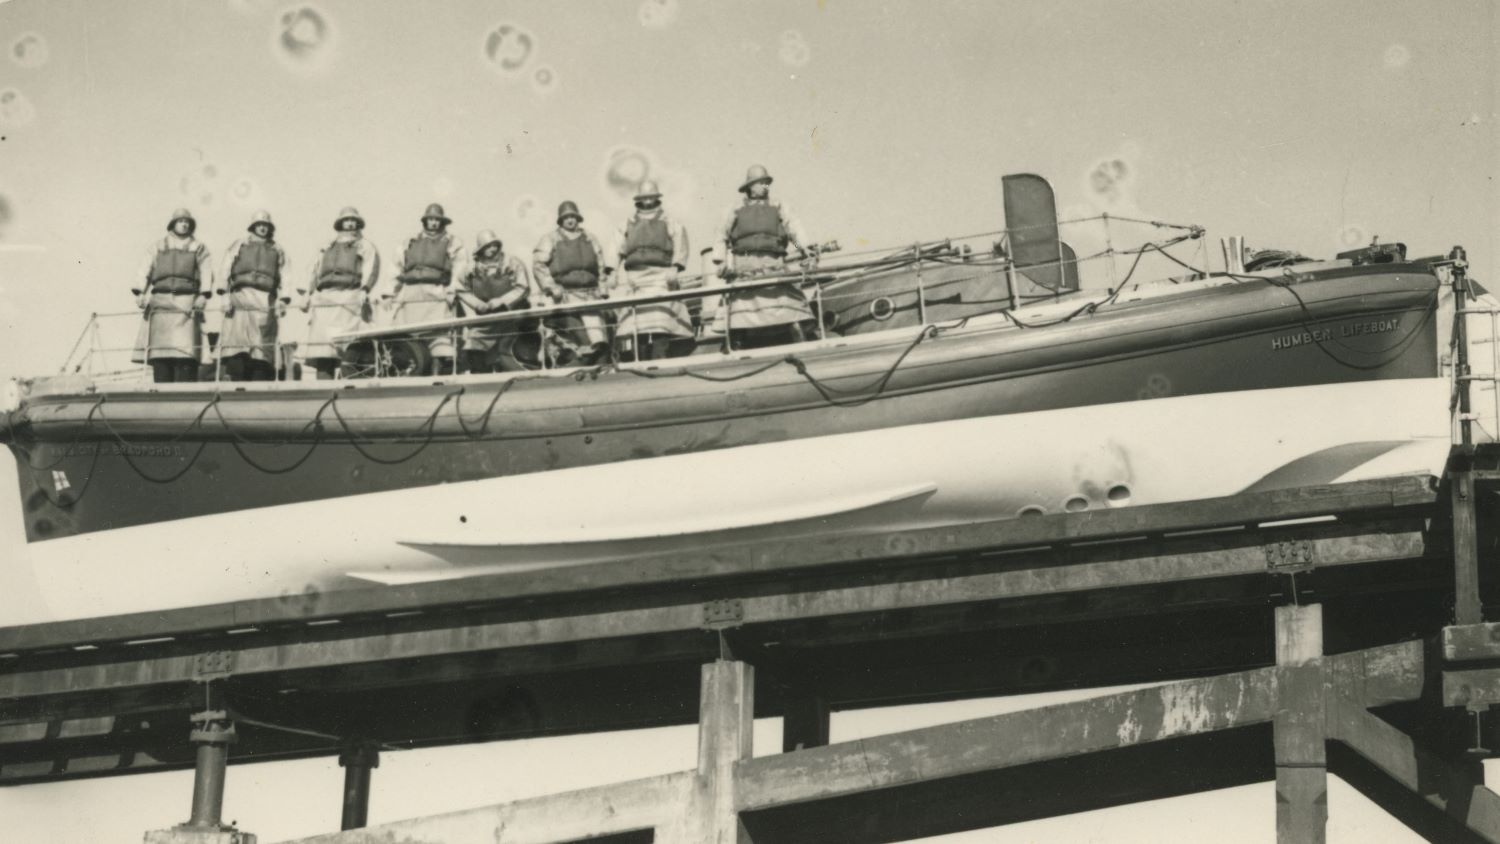 Black and white image of crew inside Humber lifeboat on slipway